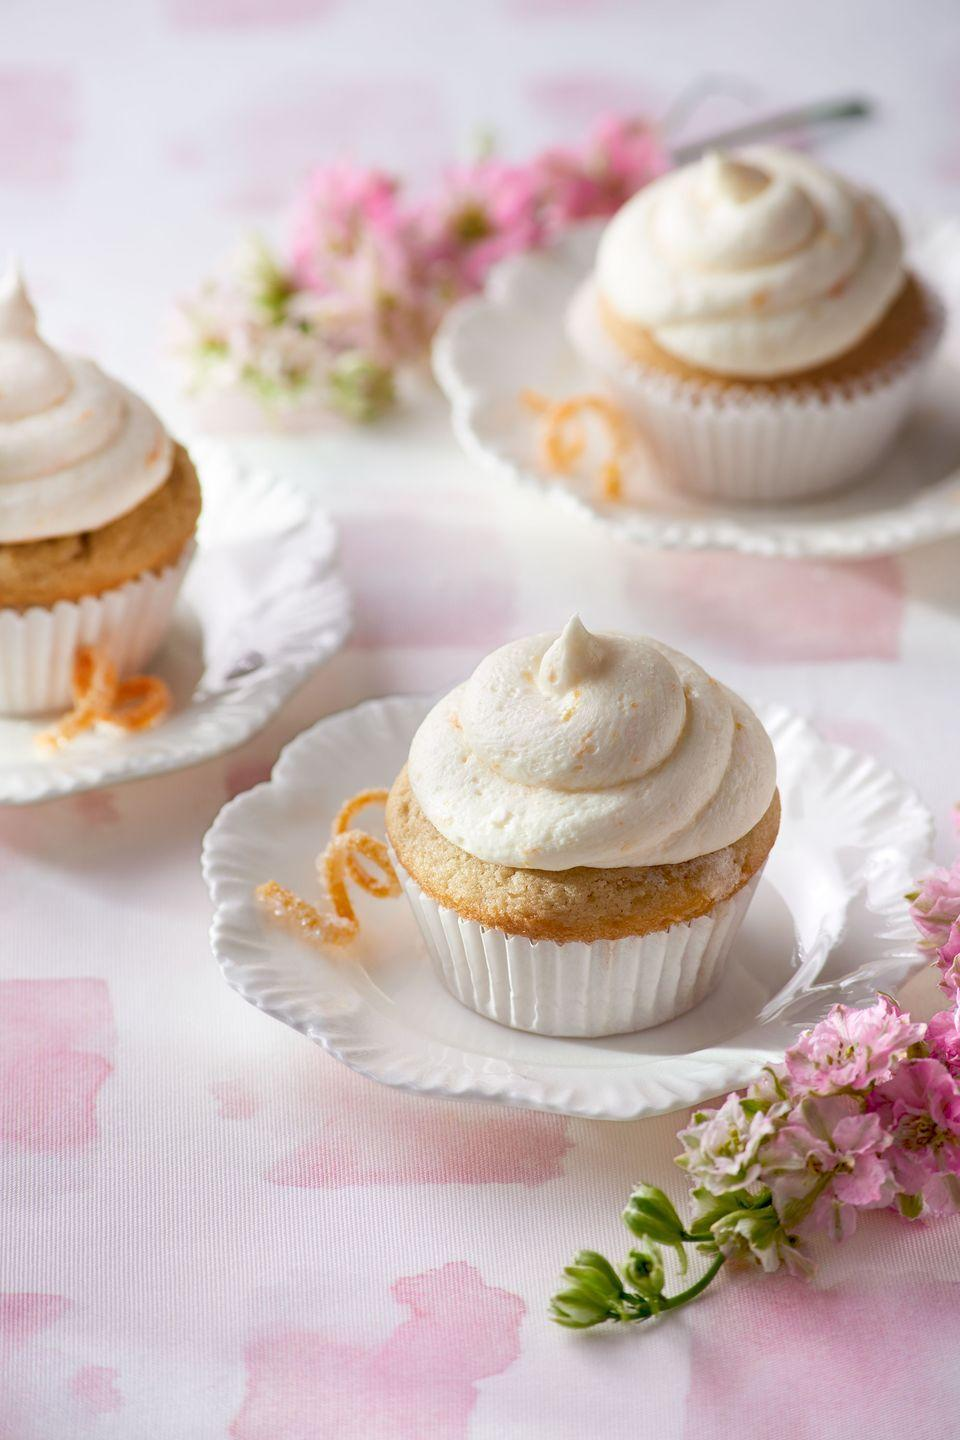 "<p>You probably already have all the ingredients you need for these classy cupcakes, which are a lovely addition to any <a href=""https://www.countryliving.com/entertaining/g21/mother-tea-party-0507/"" rel=""nofollow noopener"" target=""_blank"" data-ylk=""slk:Mother's Day tea party"" class=""link rapid-noclick-resp"">Mother's Day tea party</a>.</p><p><strong><a href=""https://www.countryliving.com/food-drinks/recipes/a37732/lady-grey-cupcakes-with-orange-zest-frosting-recipe/"" rel=""nofollow noopener"" target=""_blank"" data-ylk=""slk:Get the recipe"" class=""link rapid-noclick-resp"">Get the recipe</a>.</strong></p>"